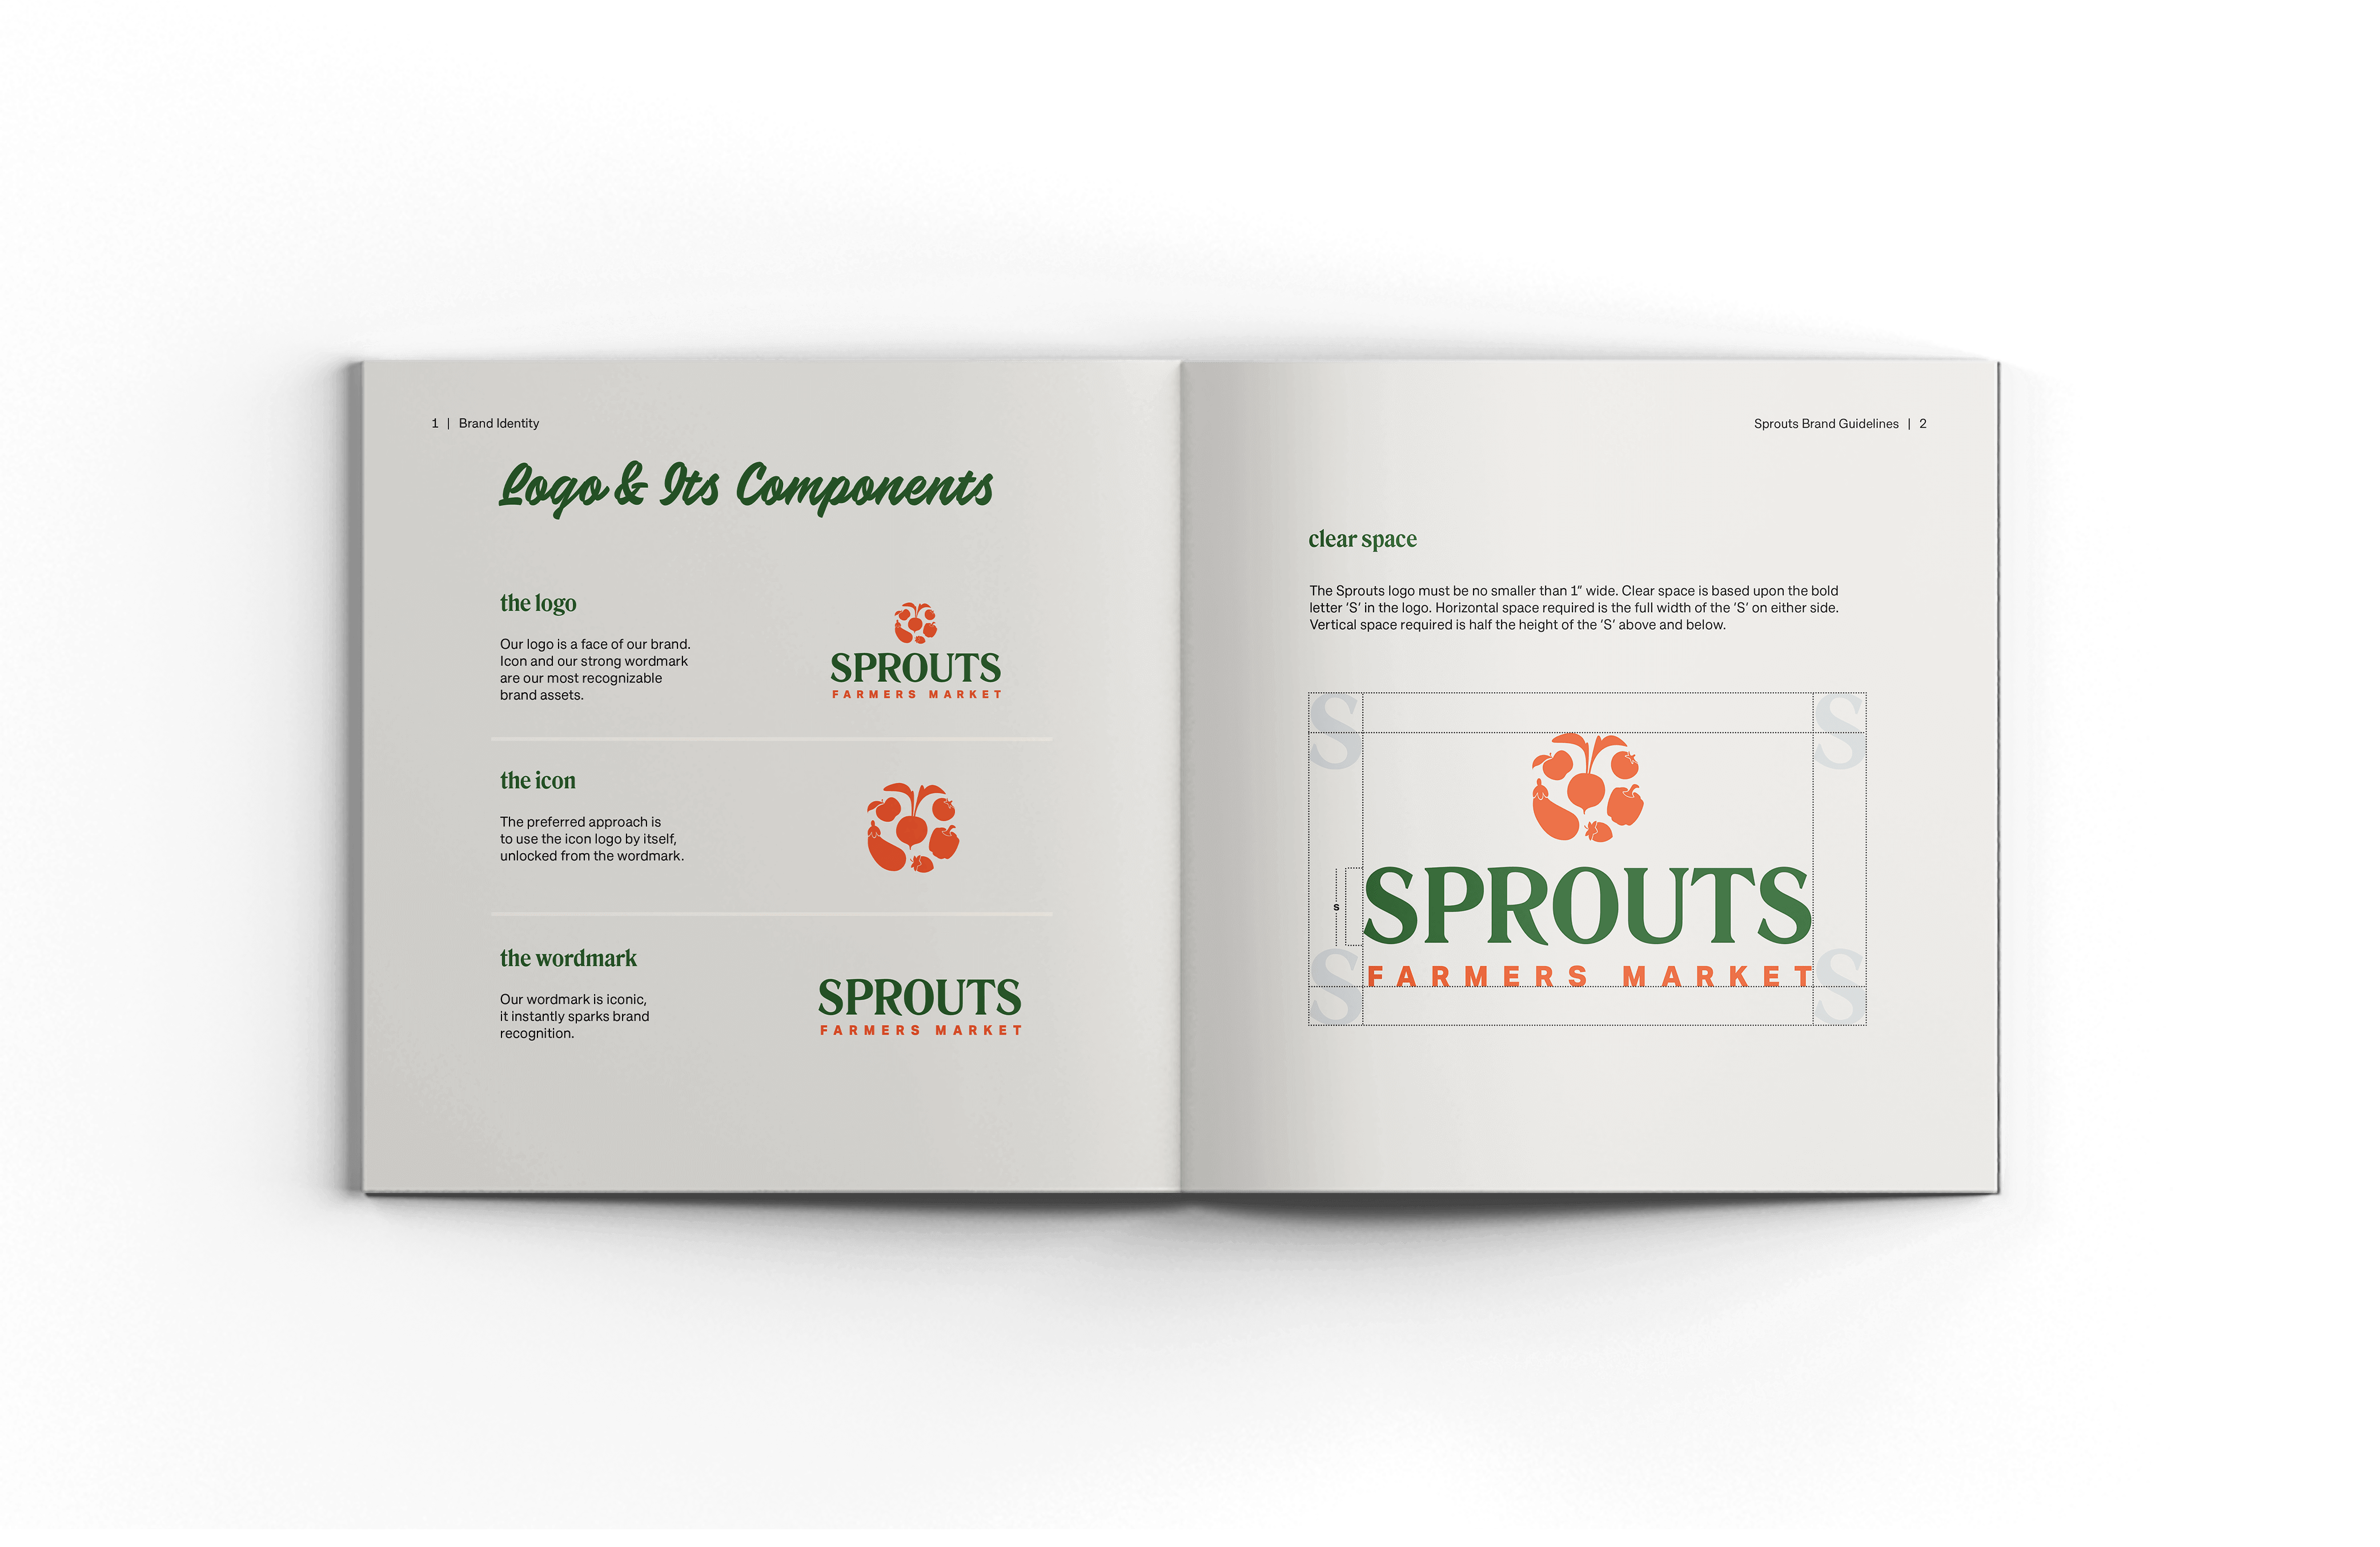 Sprouts-Guidelines-1-2-1